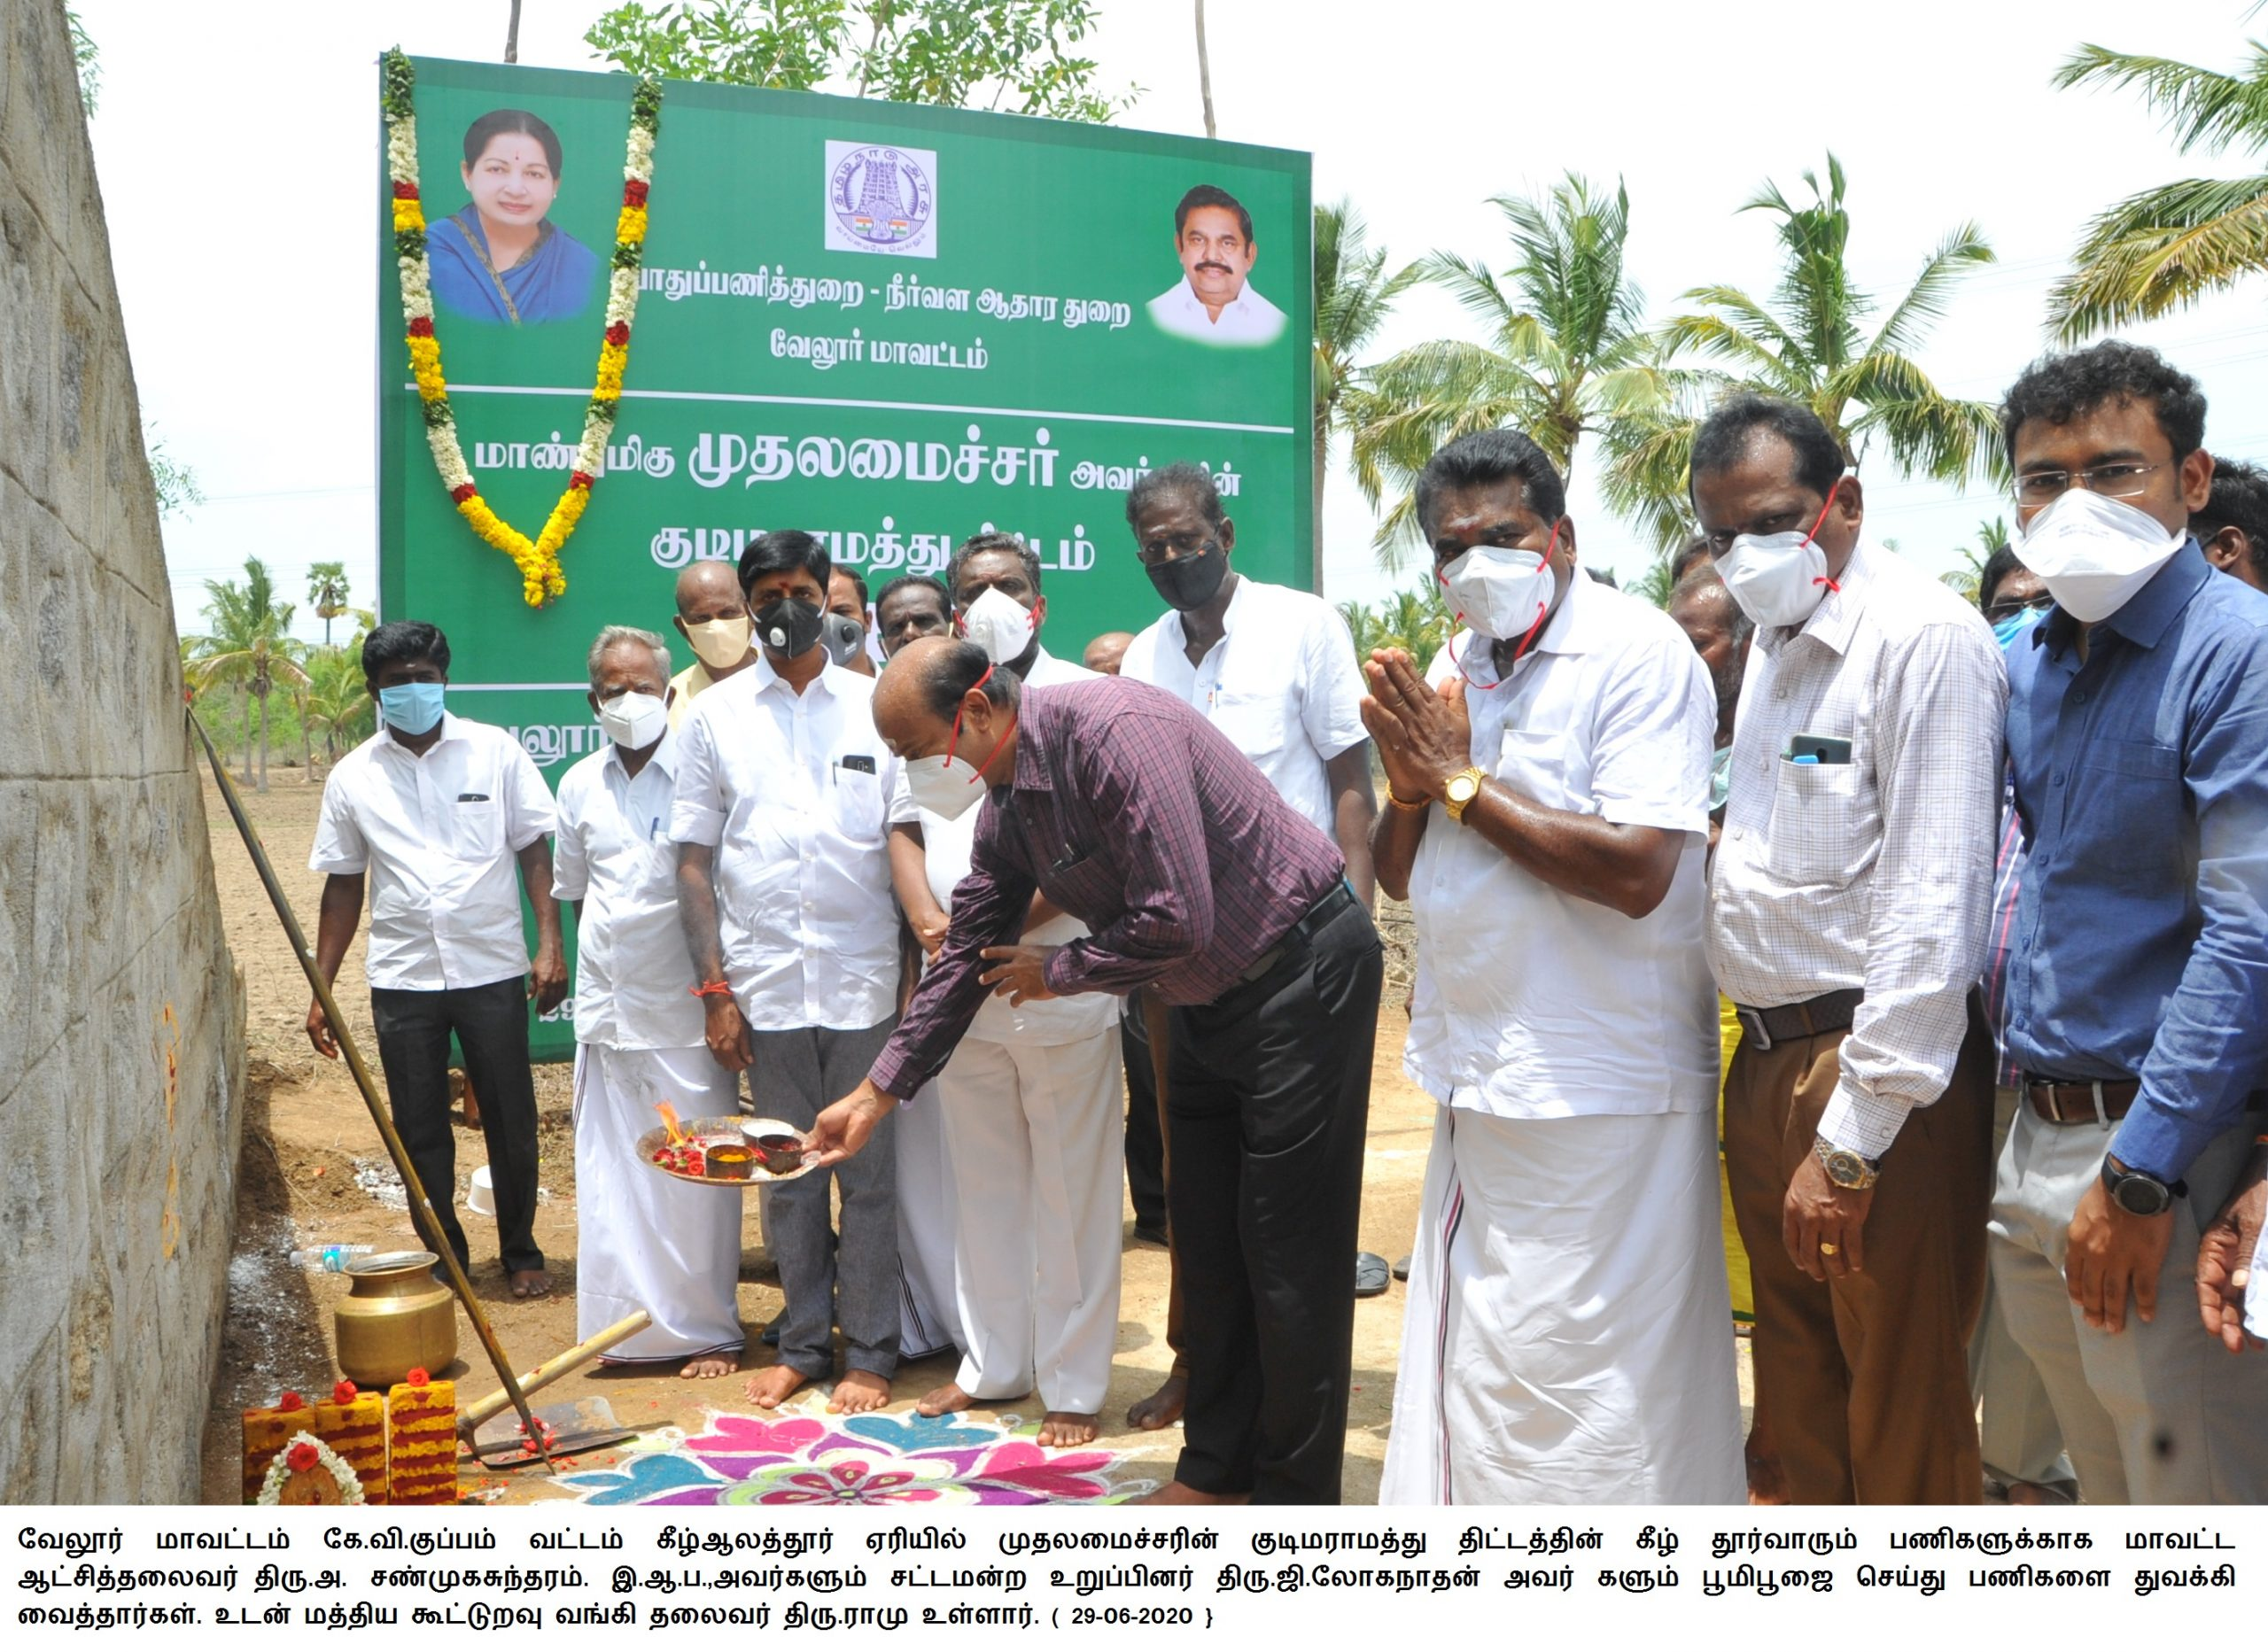 District Collector inaugurated Kudimaramathu work at Killalathur Lake 29-06-2020